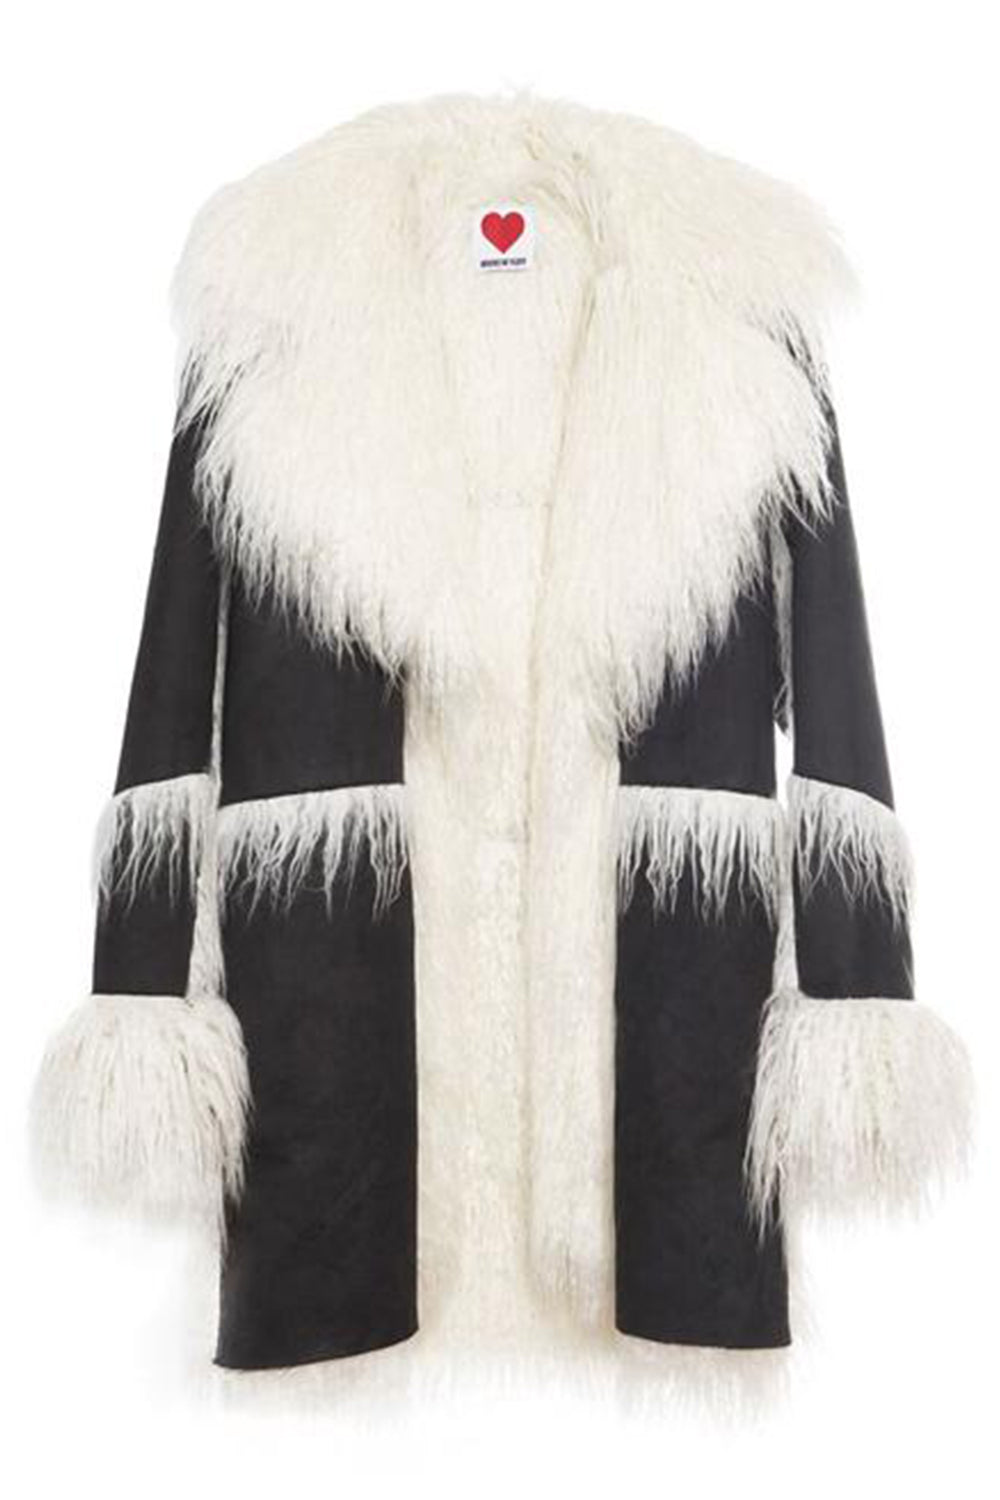 Vegan Shearling Coat in Charcoal & White